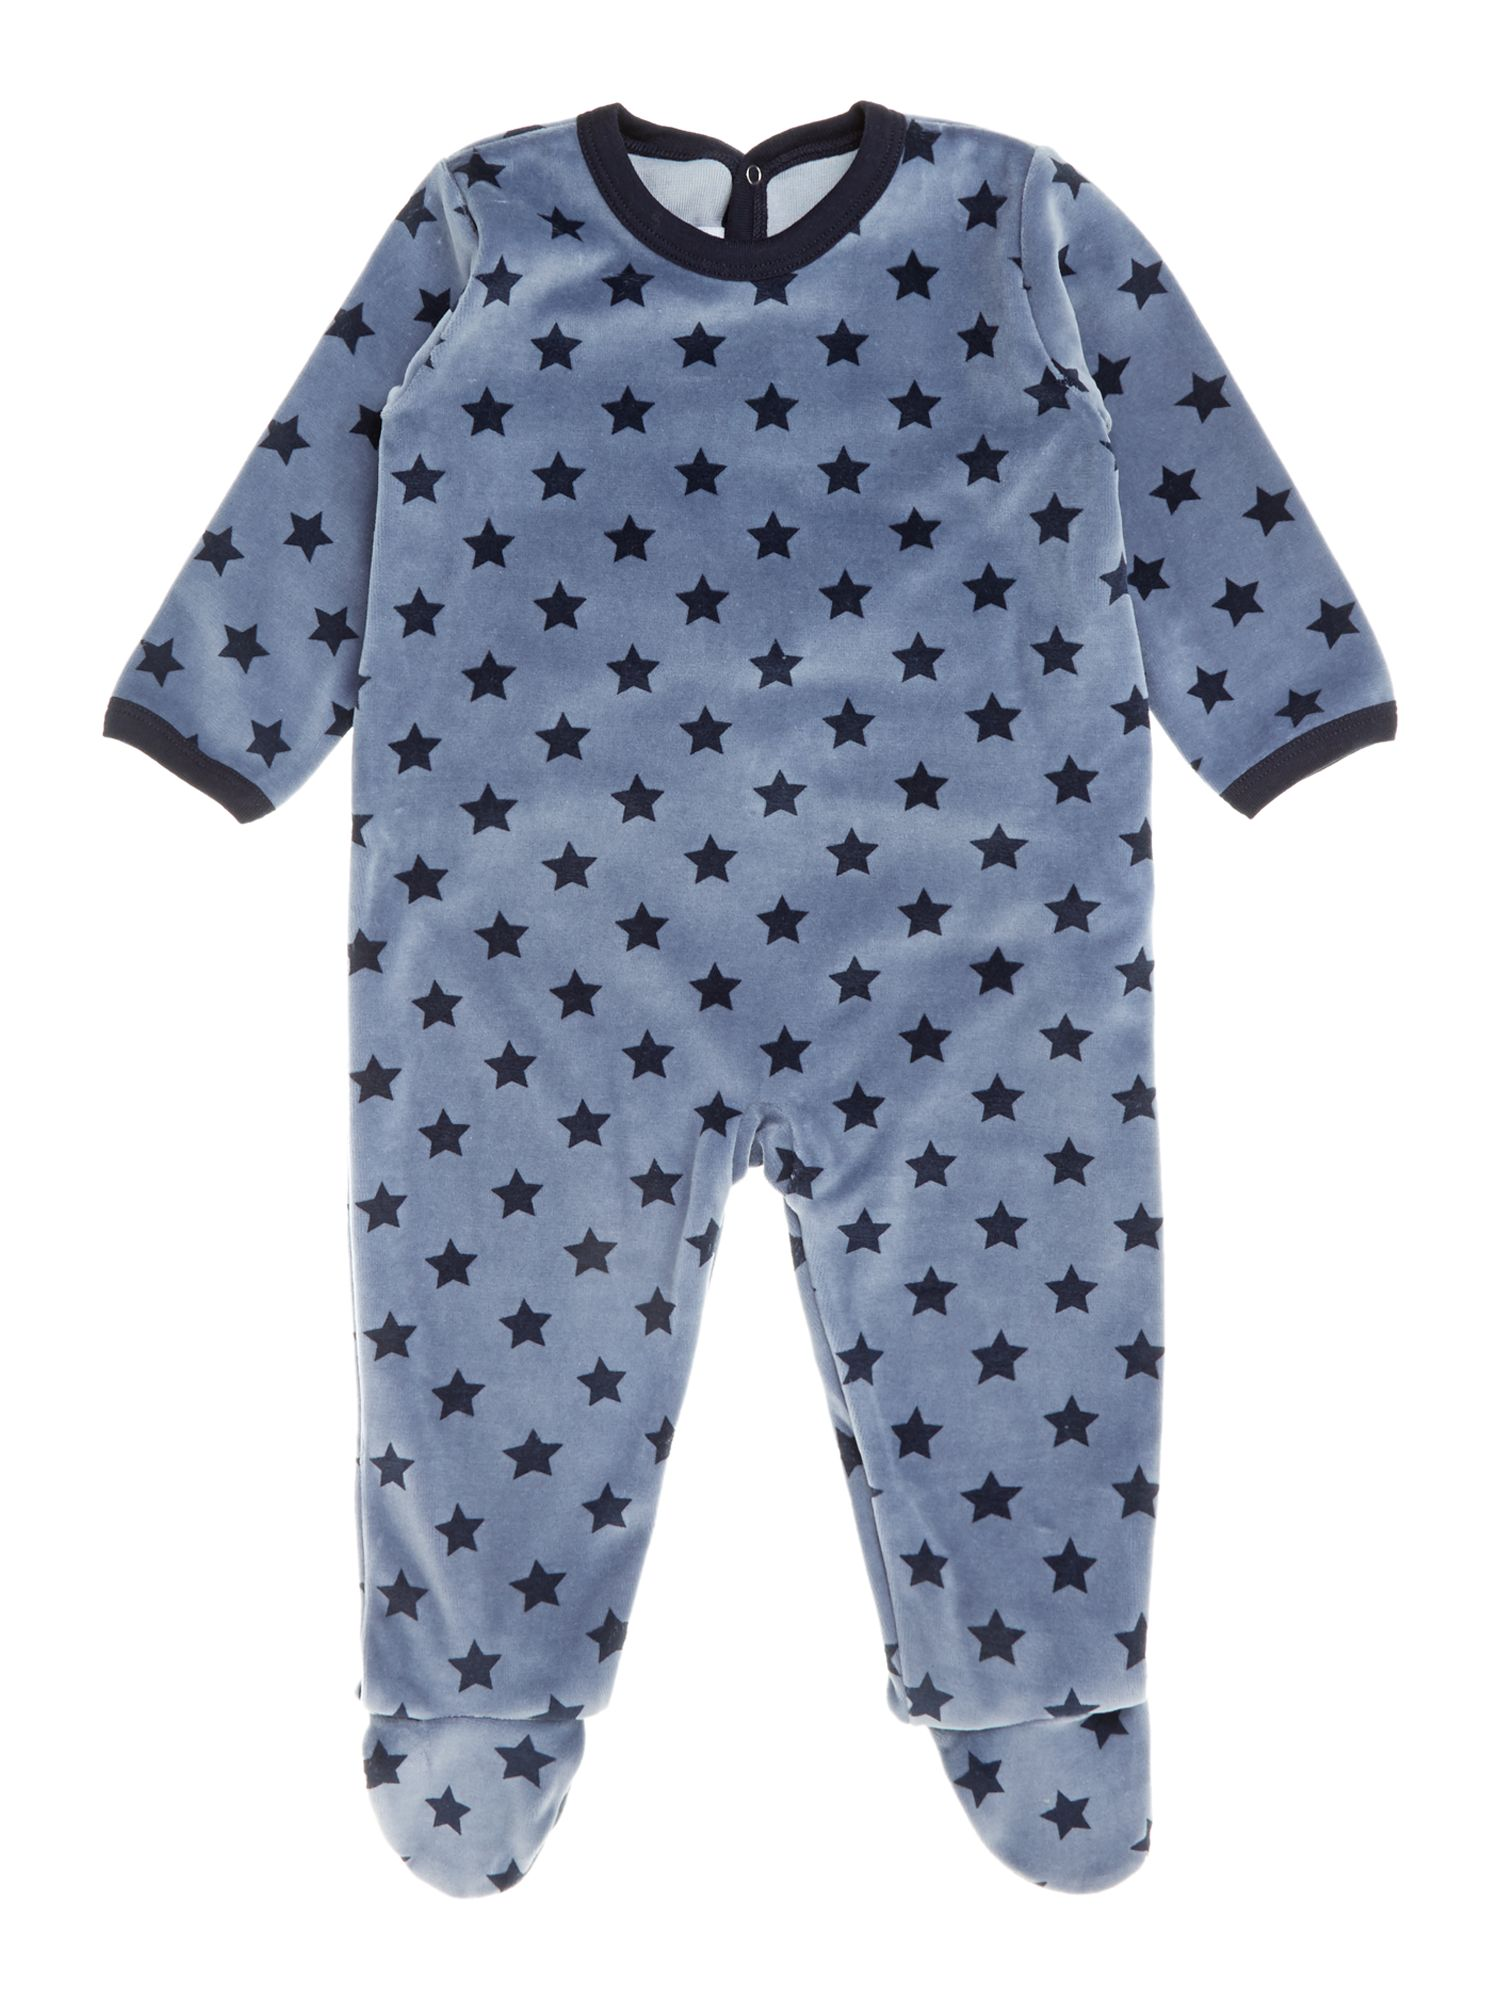 Baby boy back opening sleepsuit